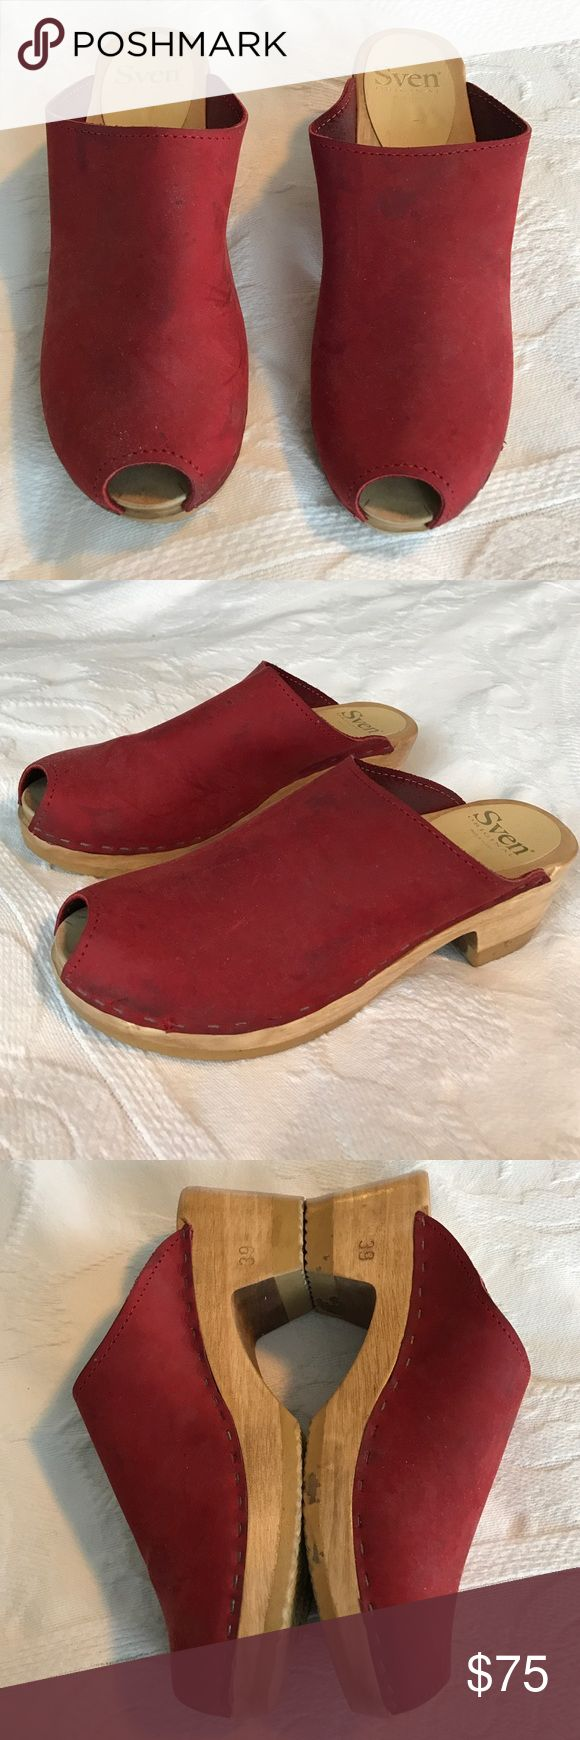 Sven Clogs in Red Leather Beautiful red Sven leather clogs. Very good condition. Sven Shoes Mules & Clogs